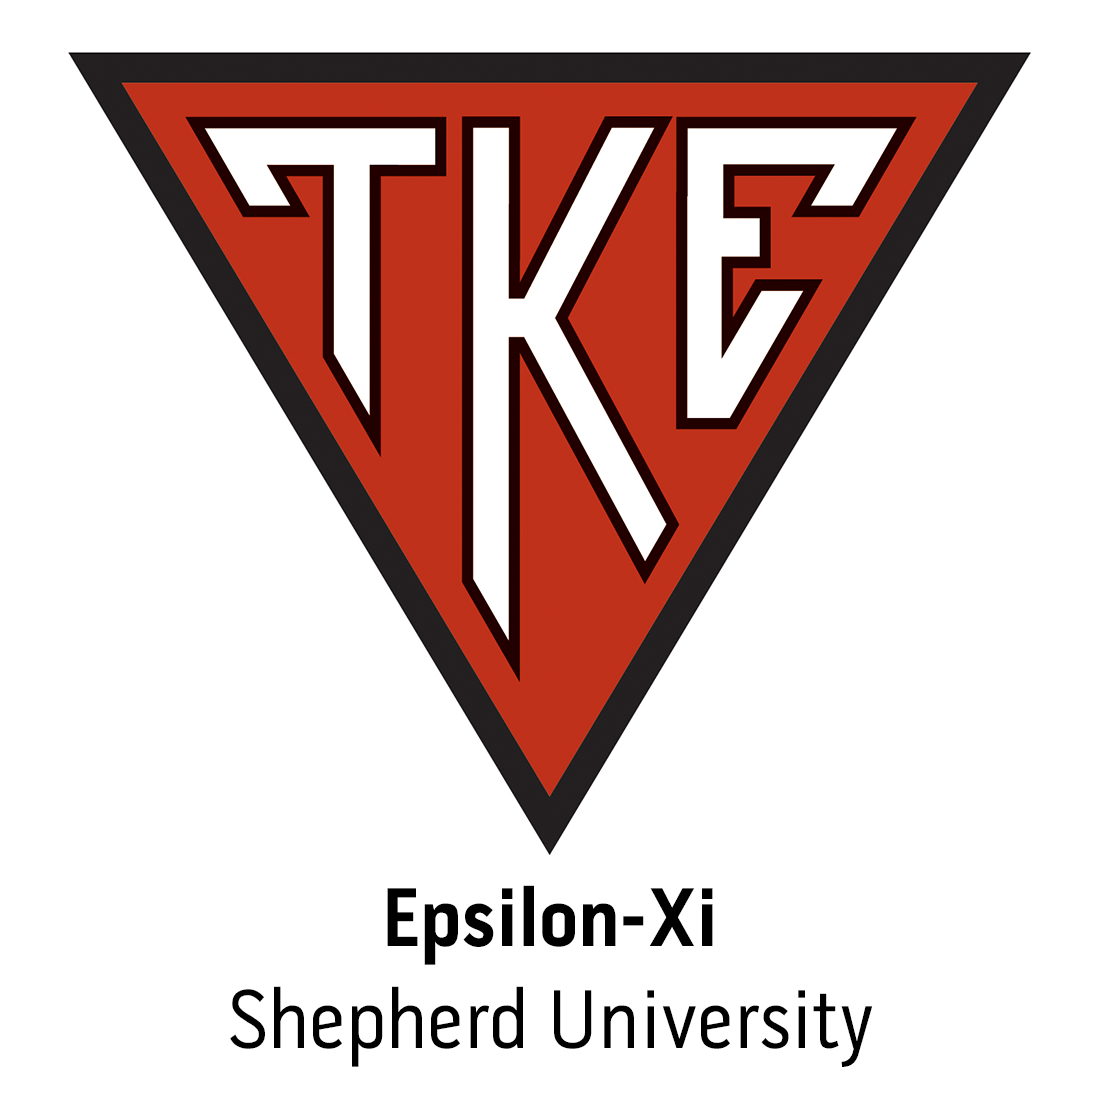 Epsilon-Xi Chapter at Shepherd University